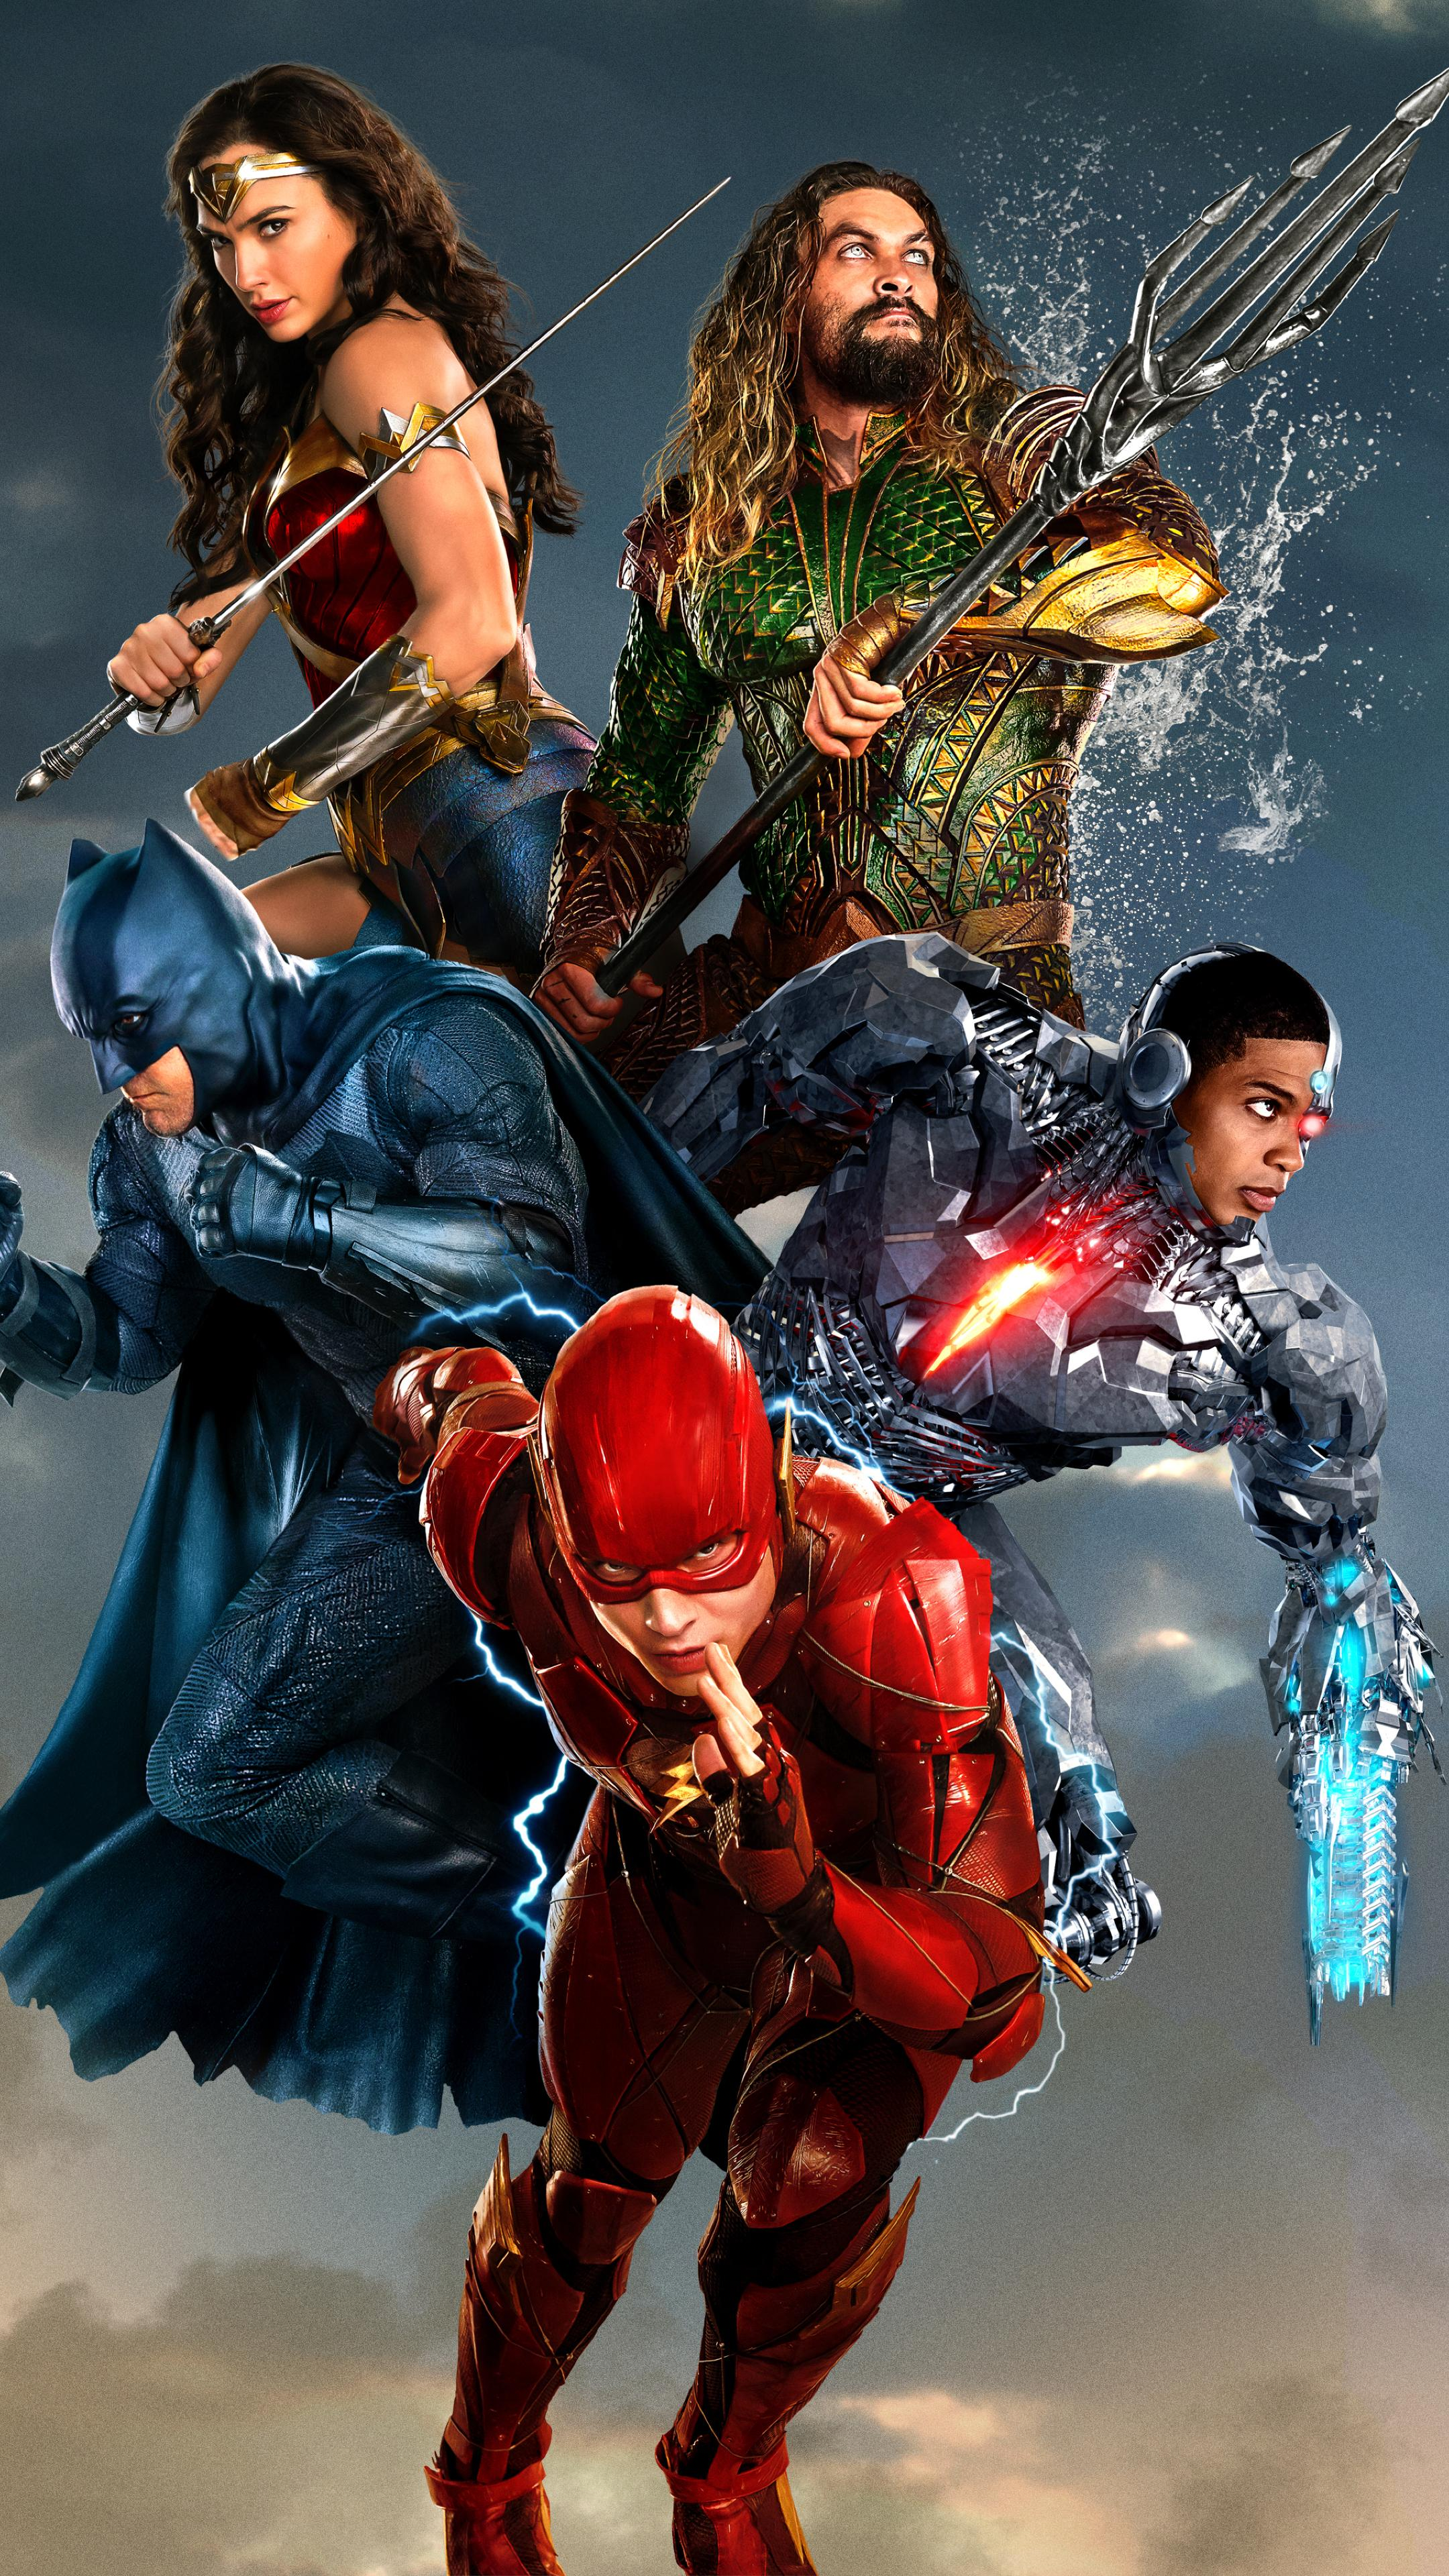 Justice League Android Wallpapers - Wallpaper Cave